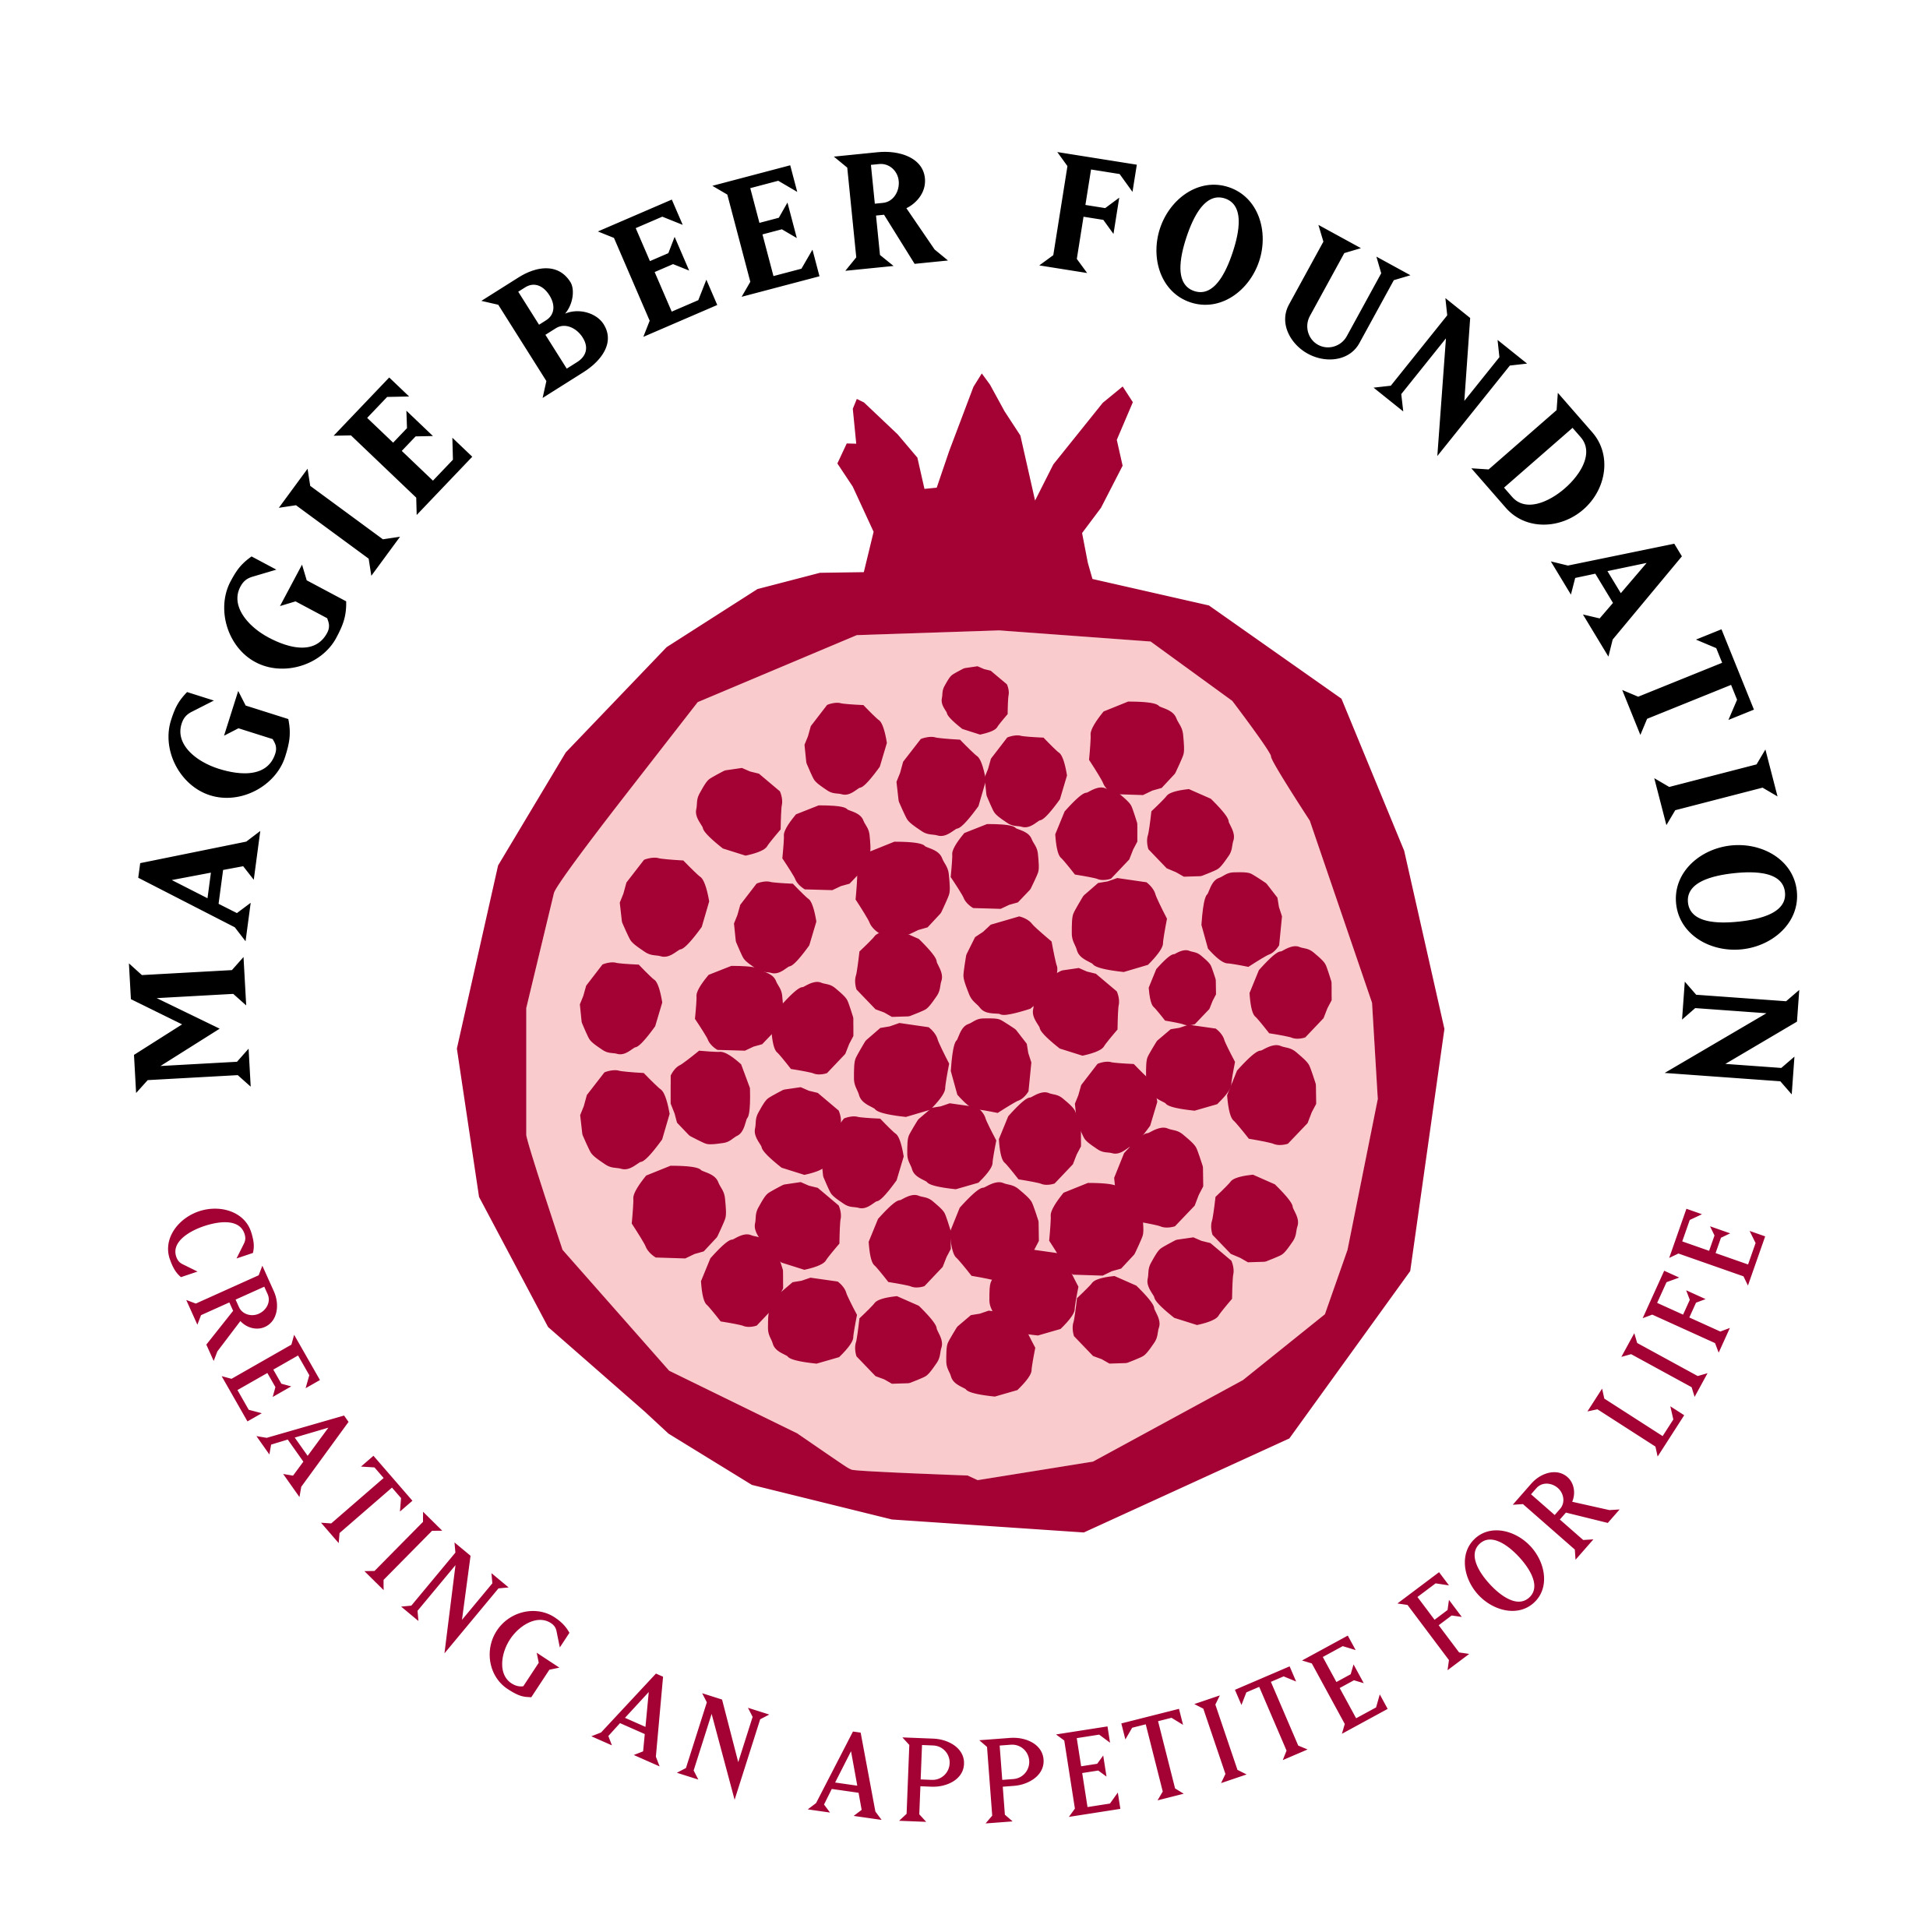 Maggie Beer Foundation